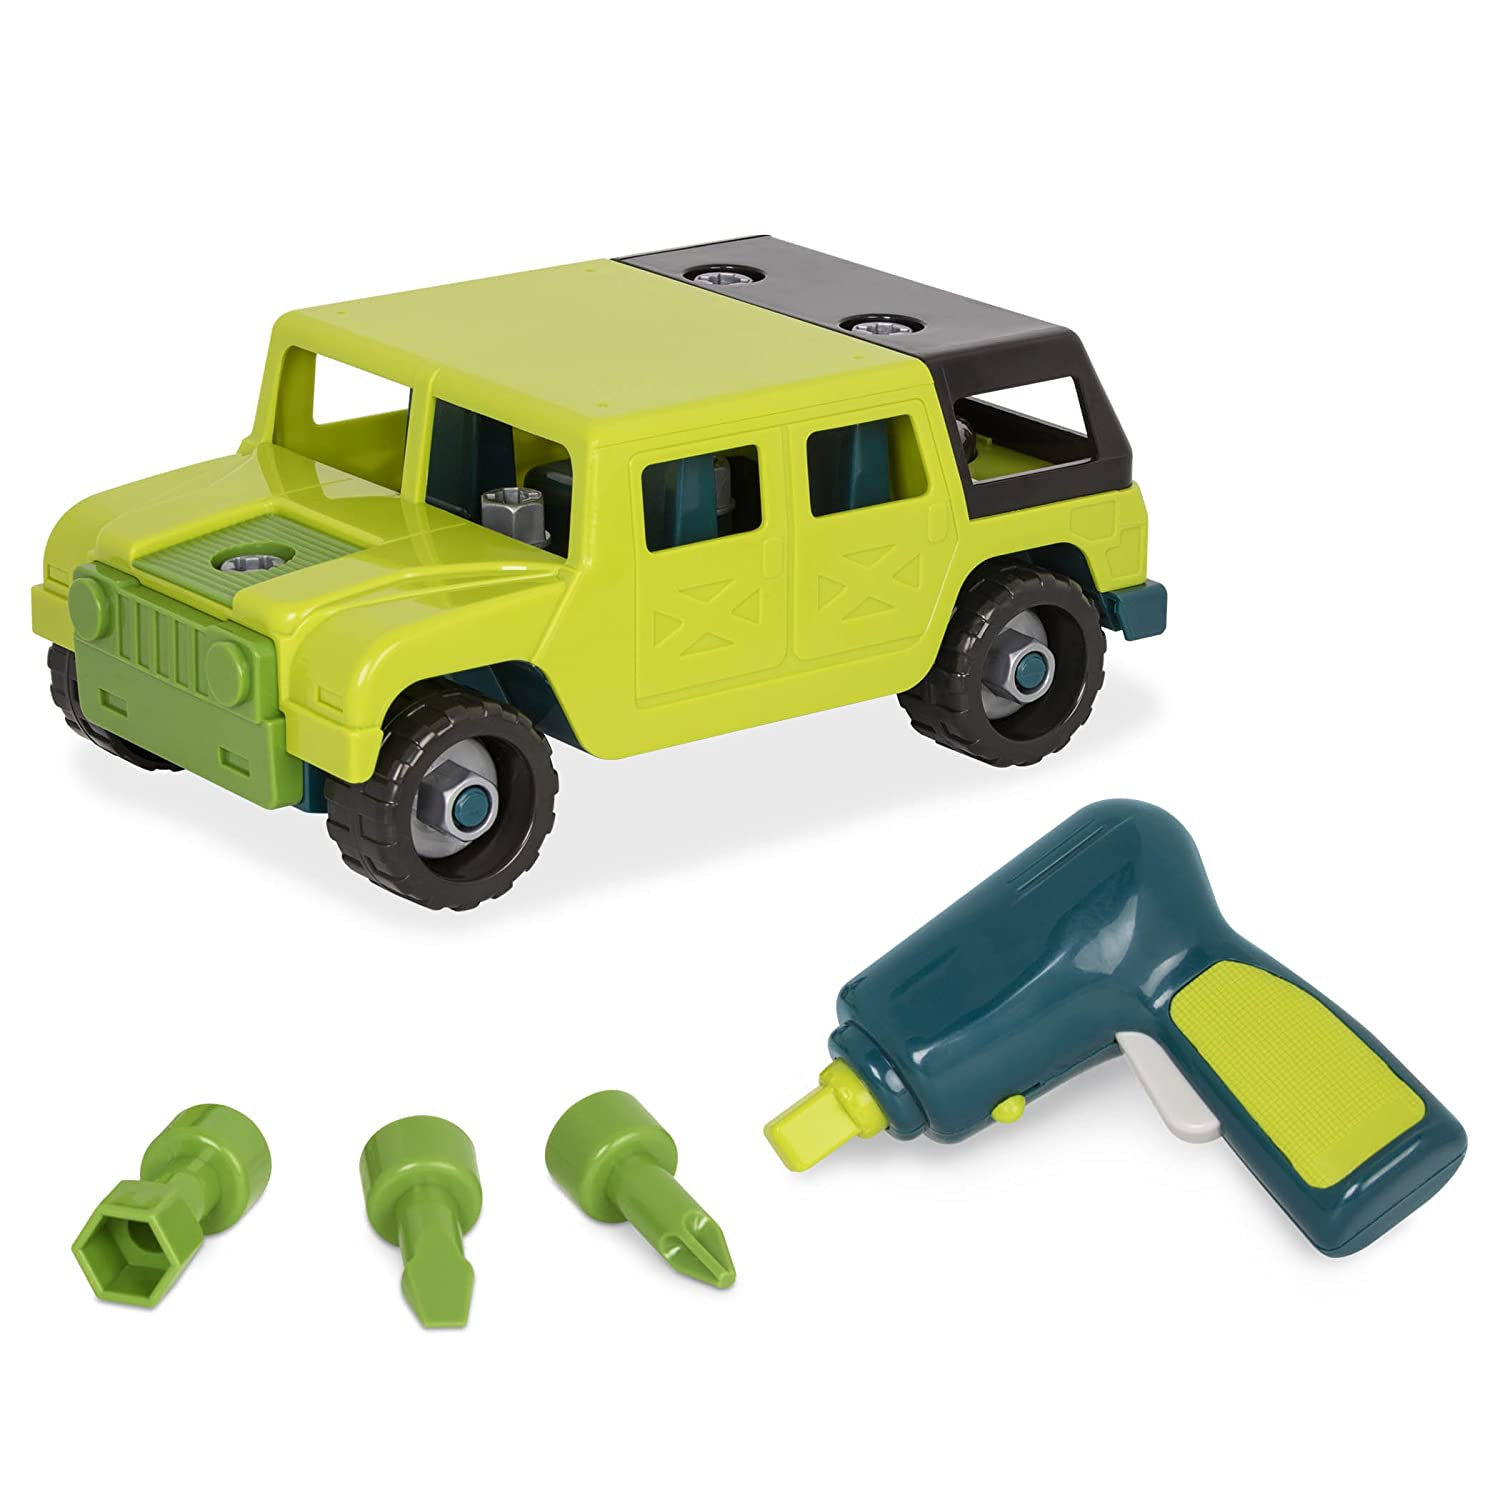 Battat – Take-Apart 4x4 Truck – Toy vehicle assembly playset with functional battery-powered drill - Early childhood developmental skills toy for kids aged 3 and up